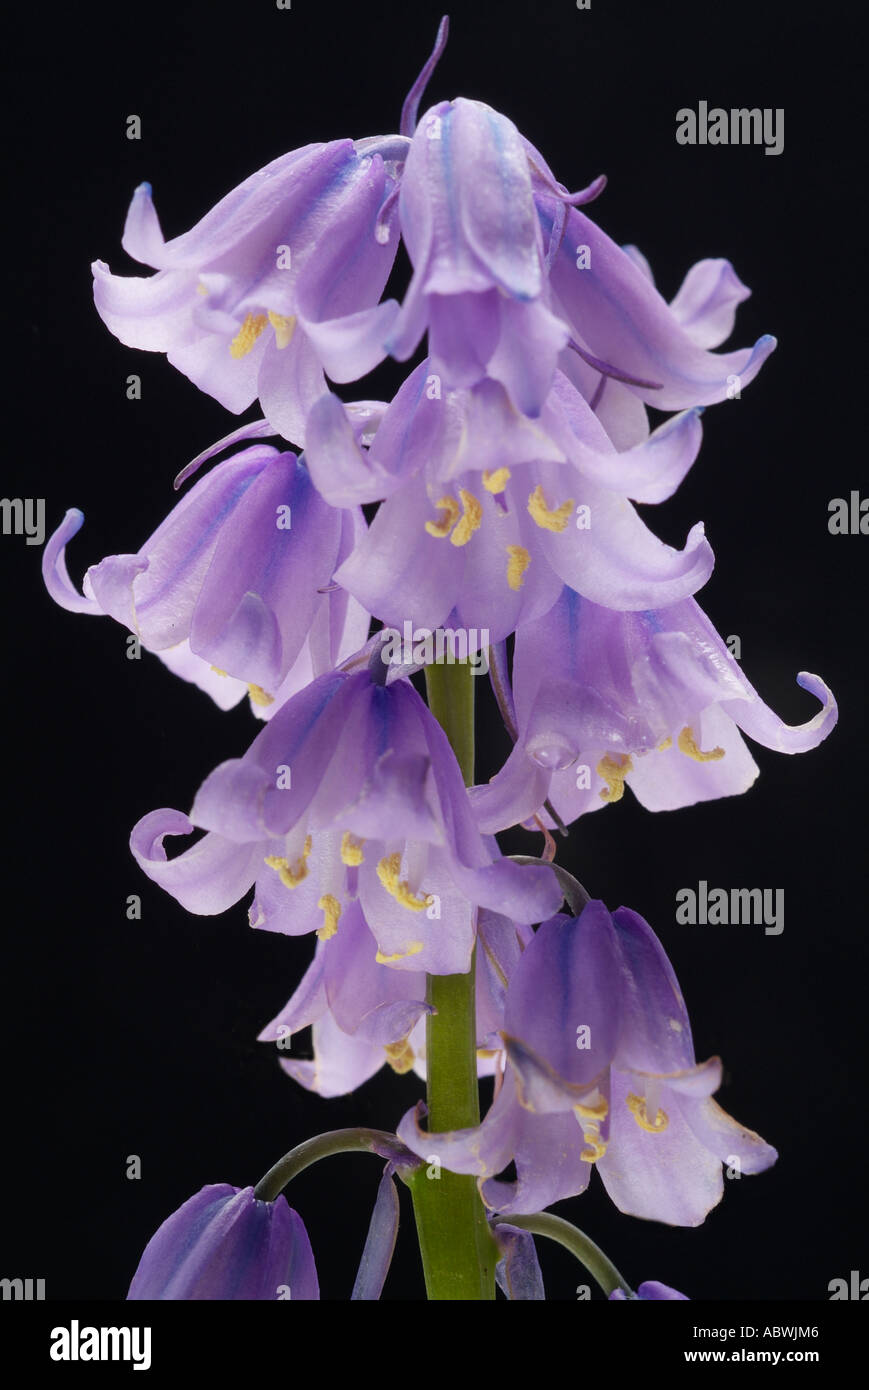 Blue bell hyacinthoides bluebell multi head spring early first close up atmospheric moody classic - Stock Image